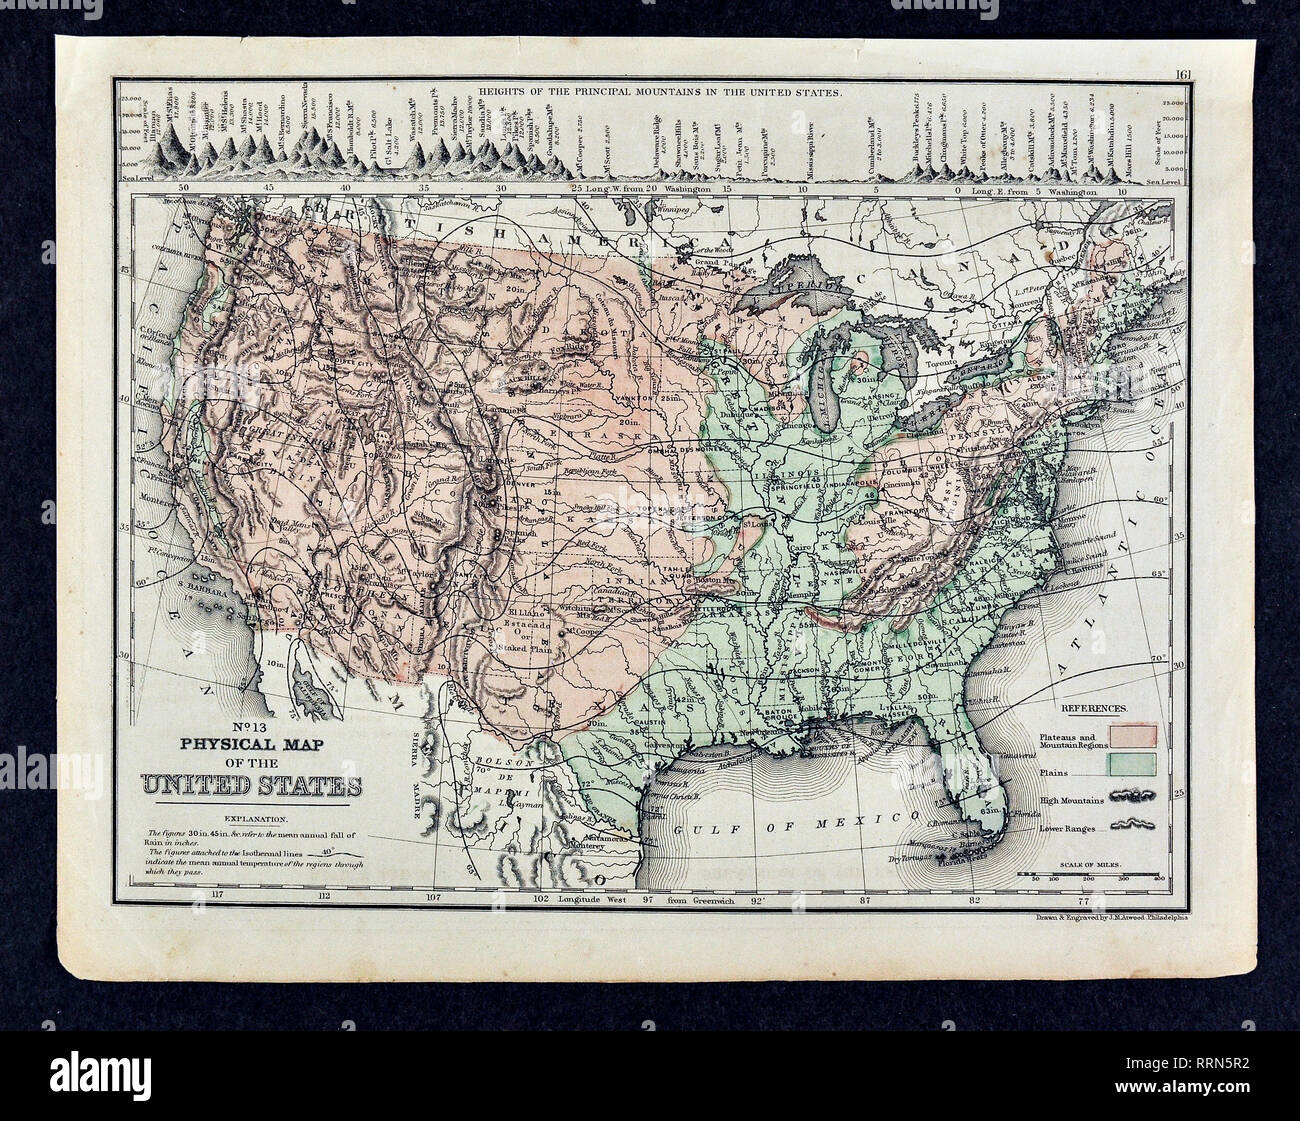 1868 Mitchell Physical Map Of The United States Of America Showing Mountain Ranges Plateaus And Plains Stock Photo Alamy